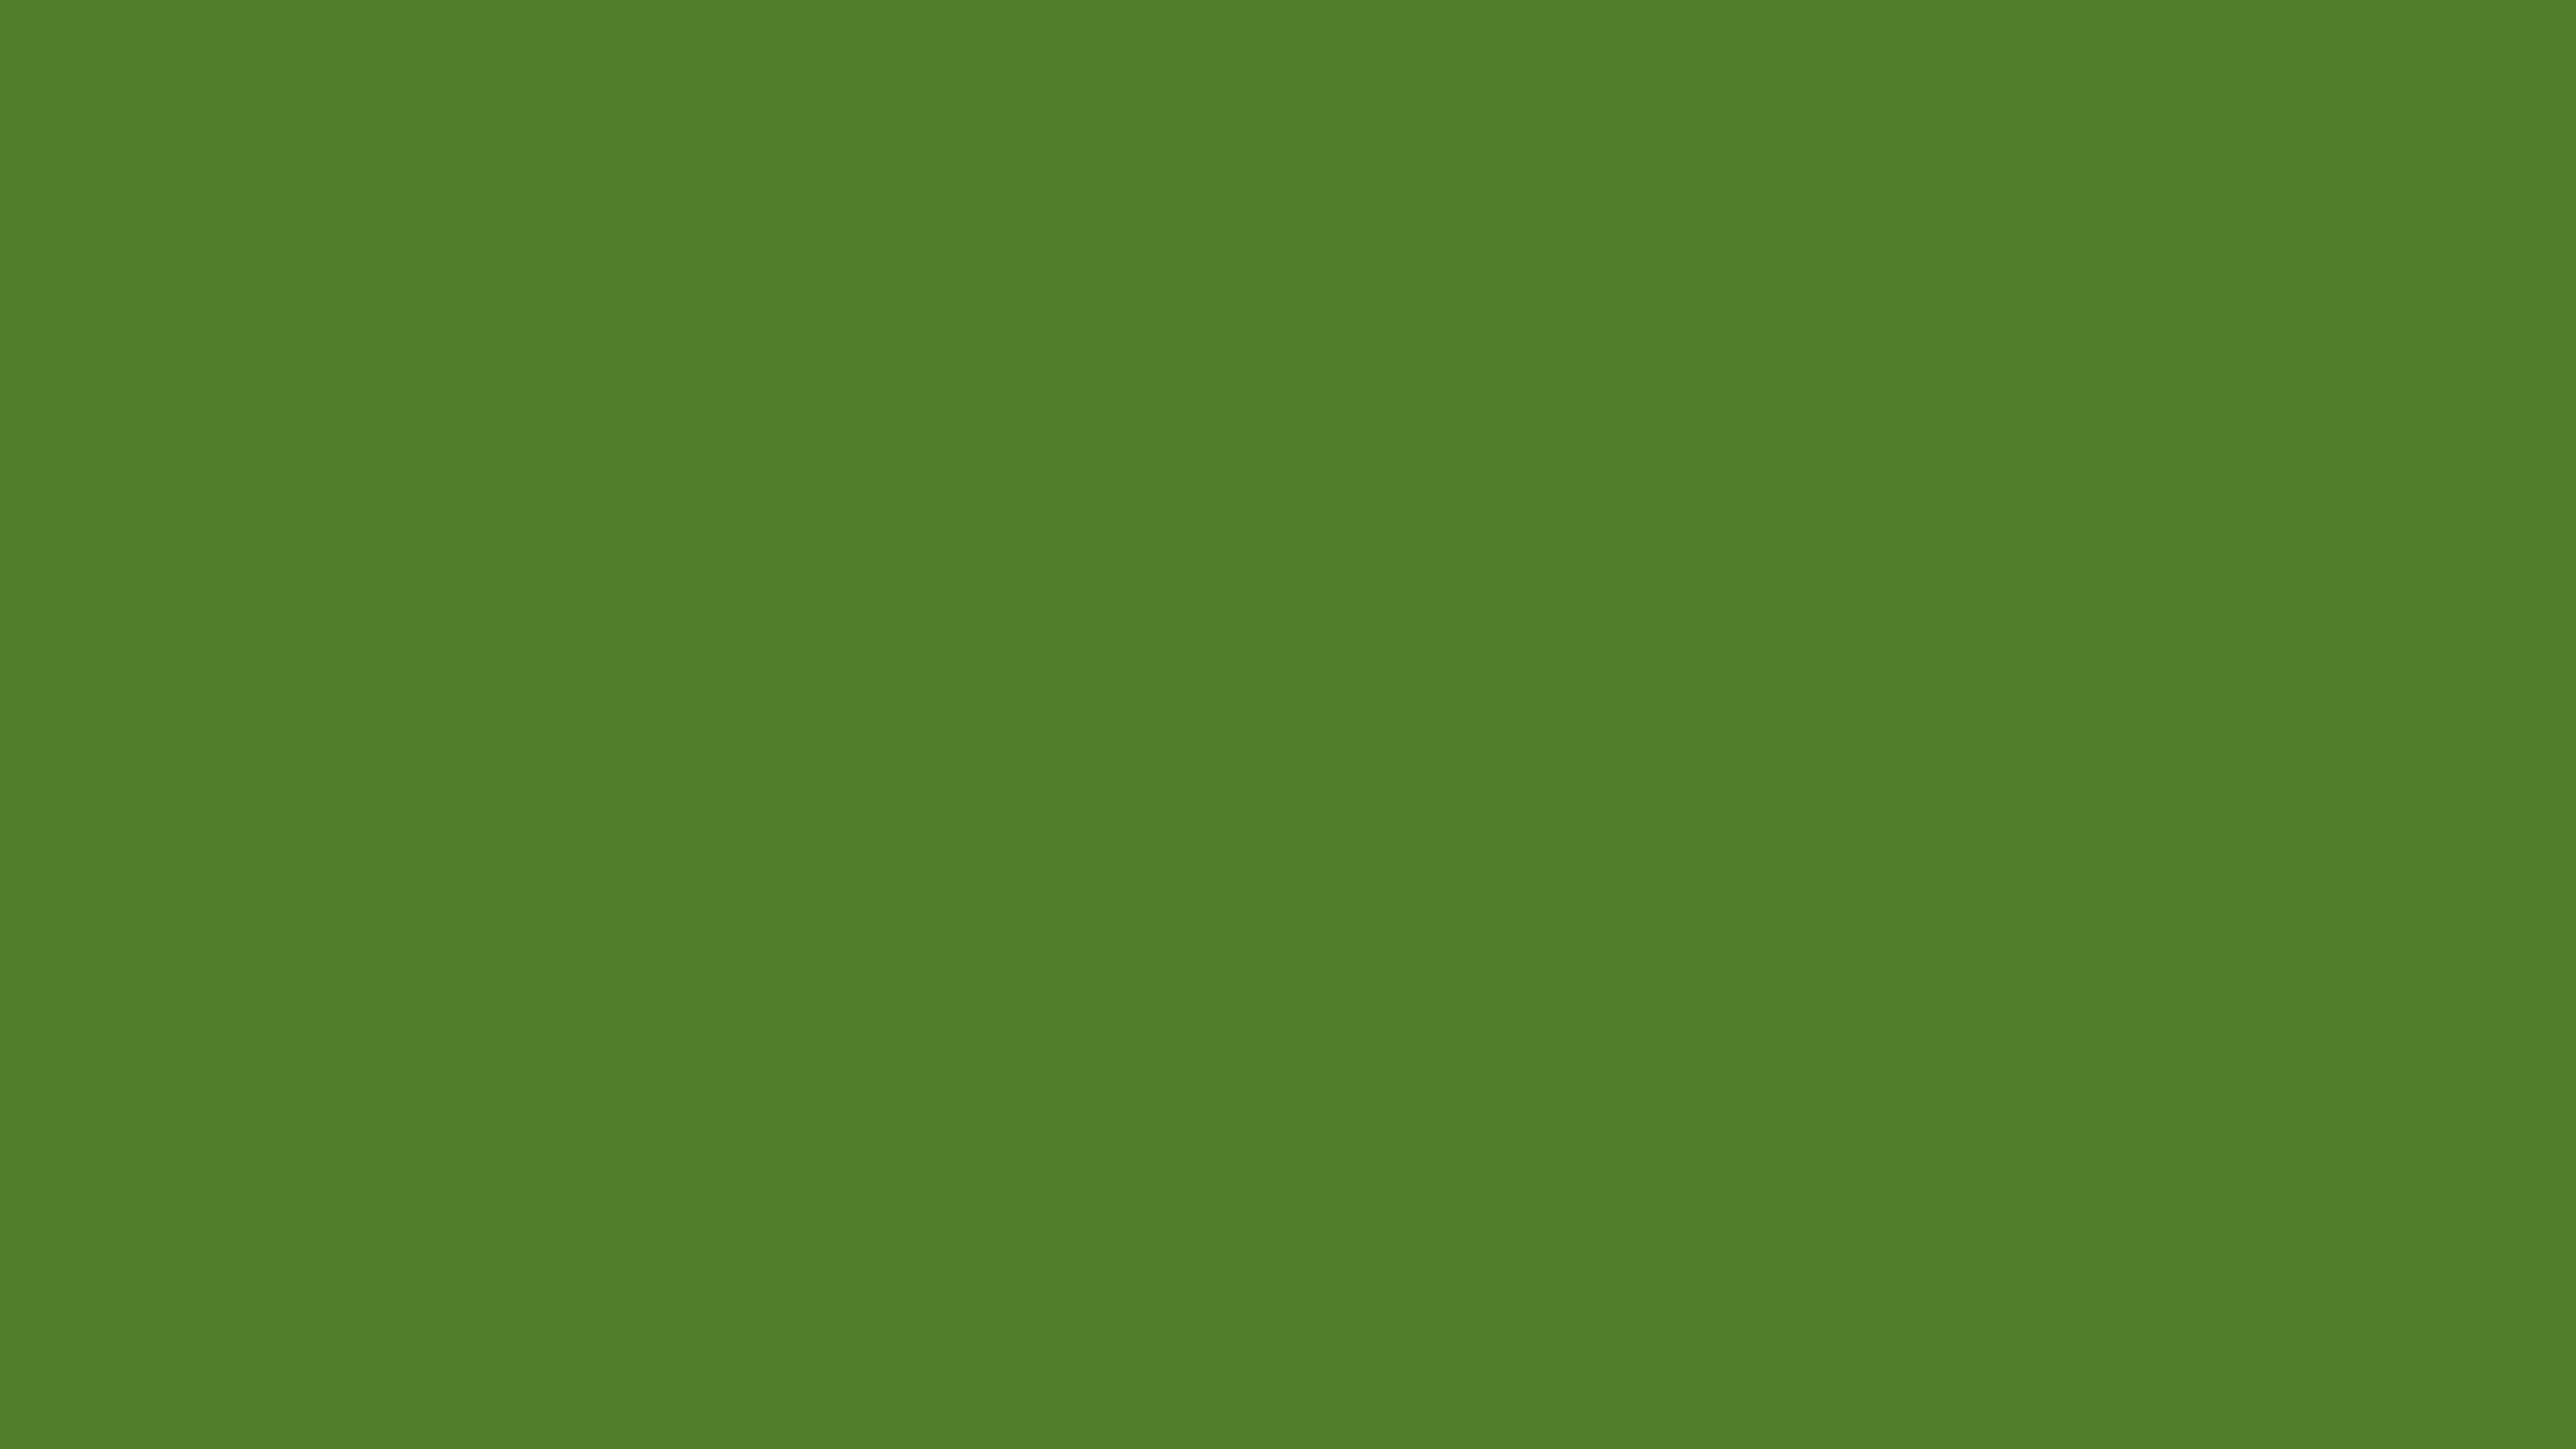 3840x2160 Sap Green Solid Color Background